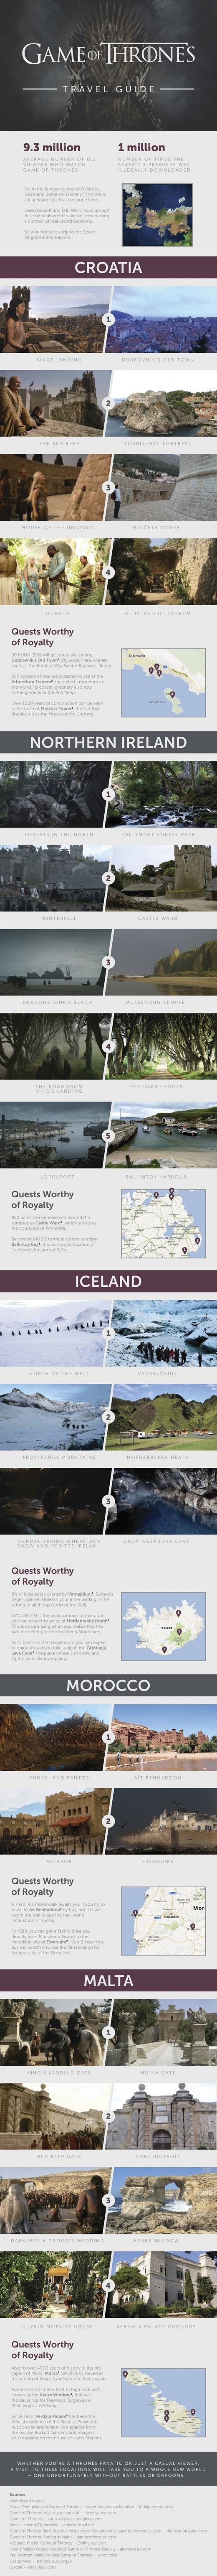 game-of-thrones-travel-guide (2)